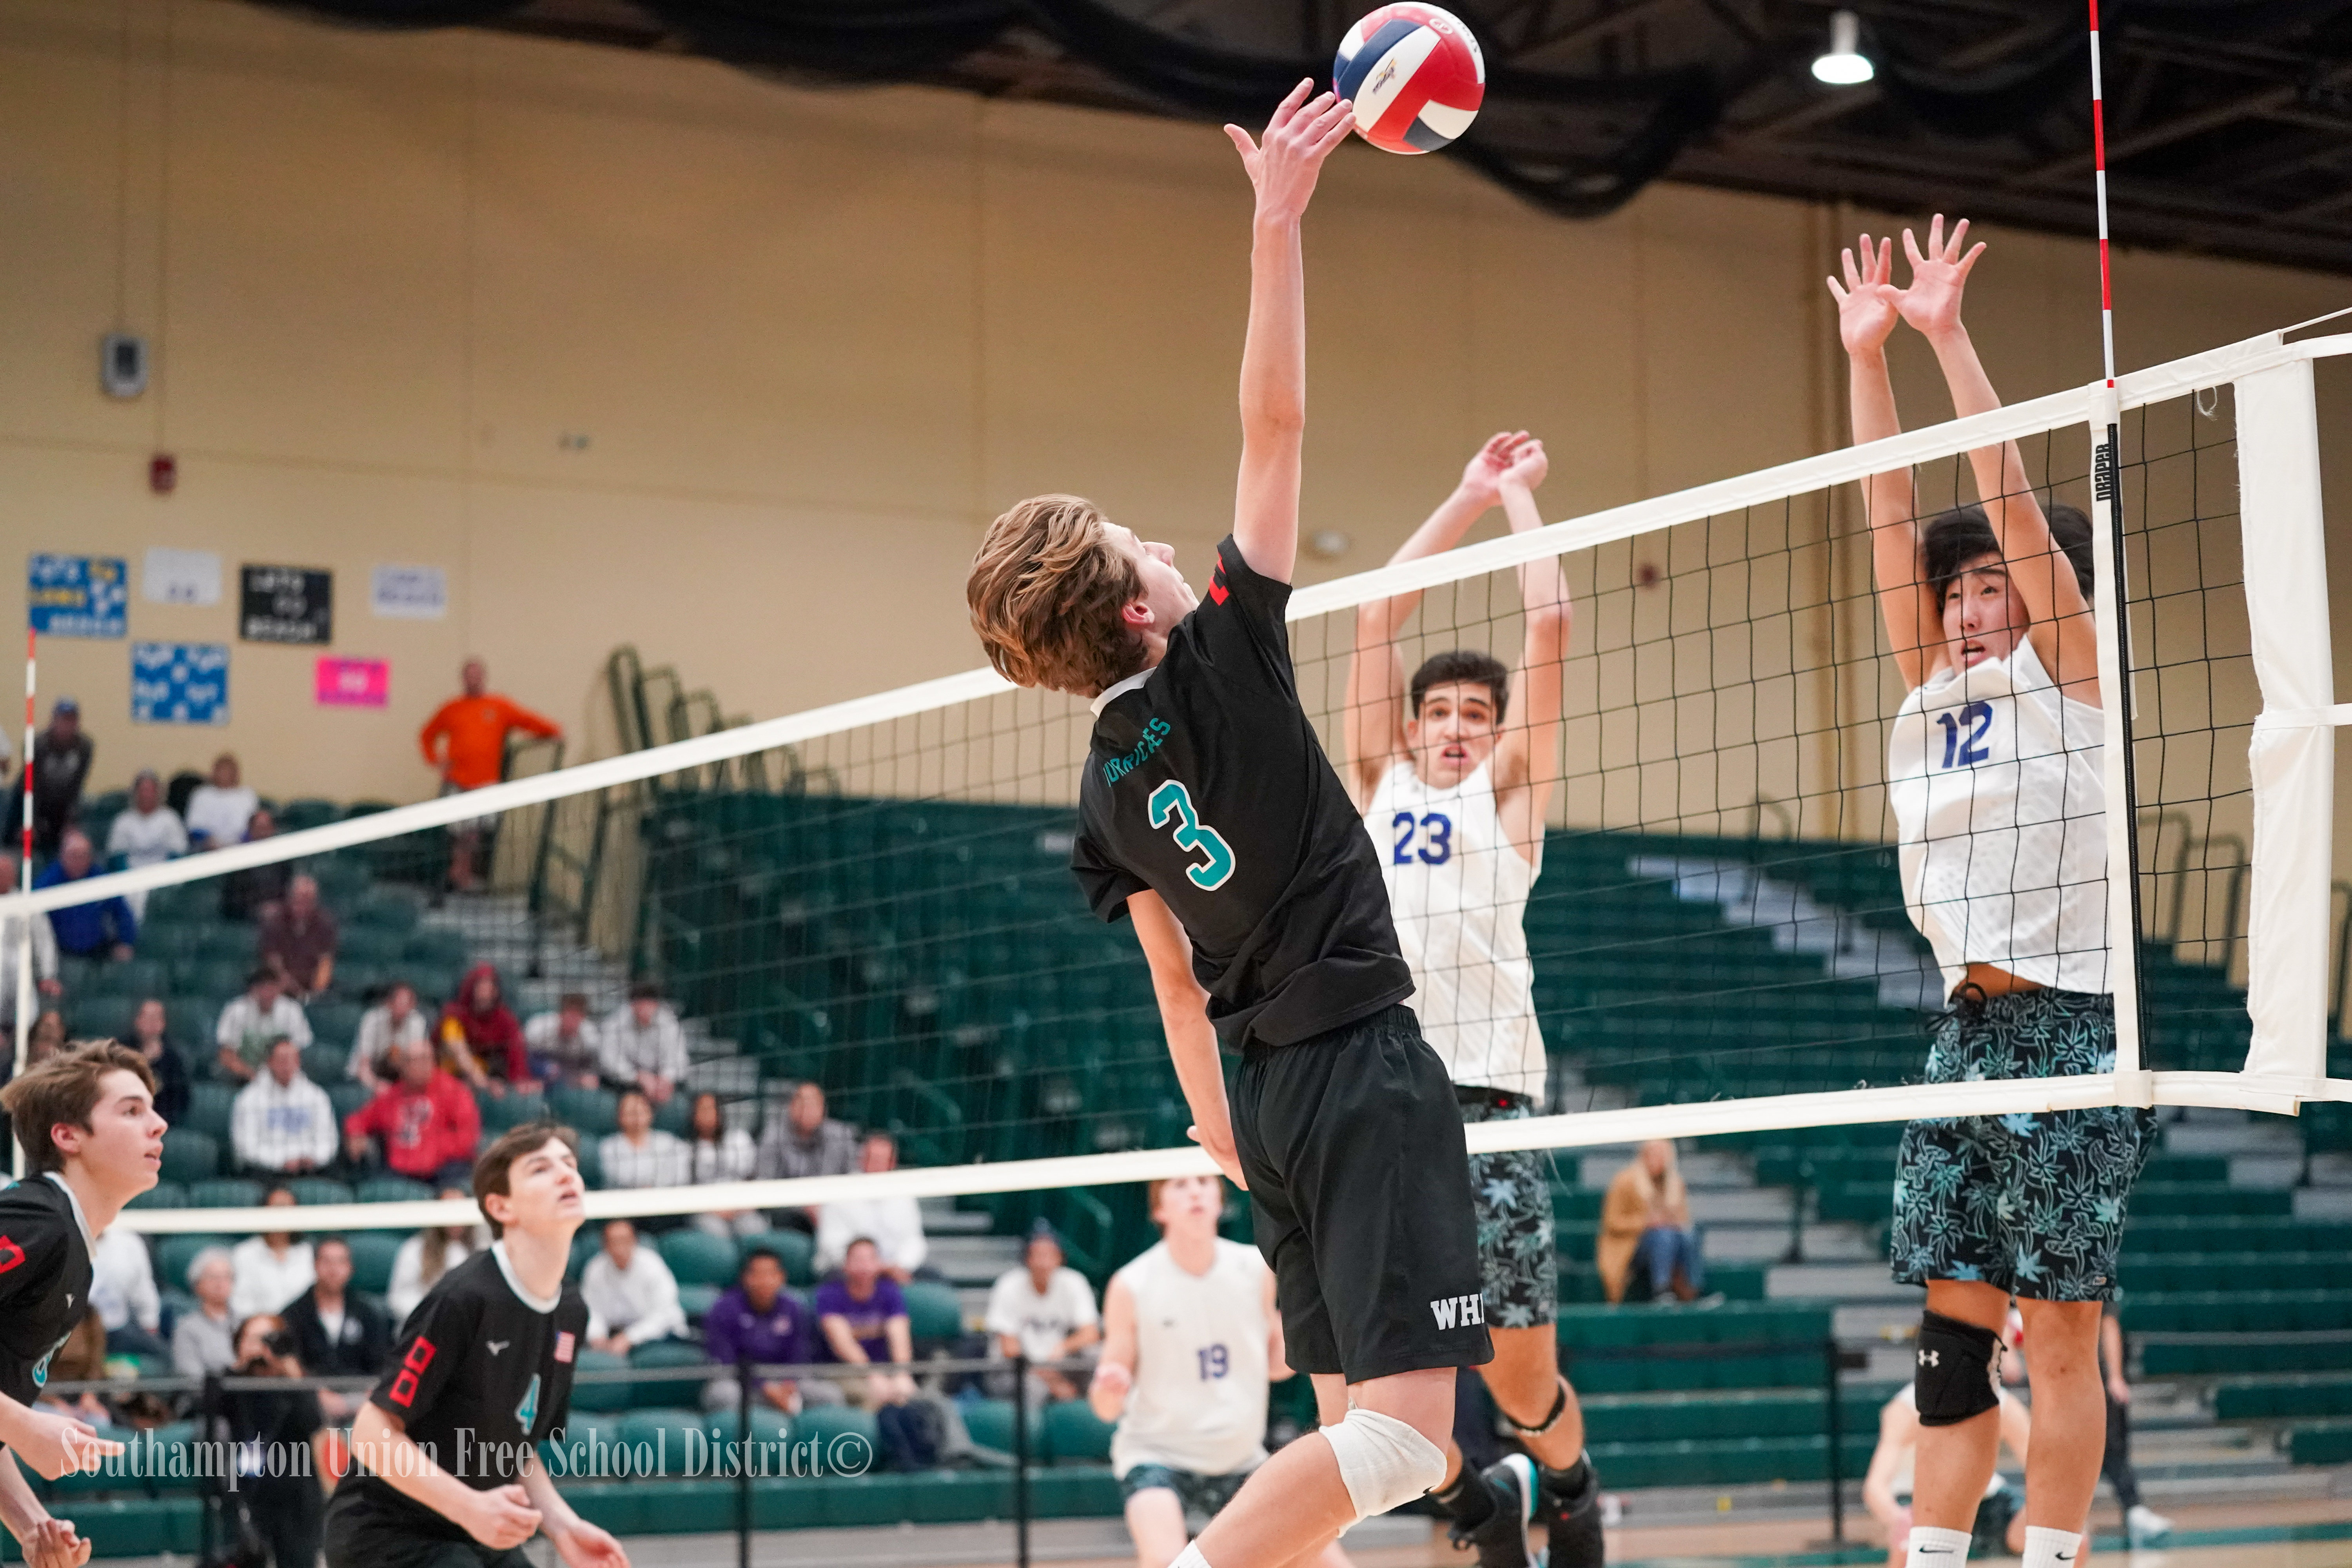 Westhampton Beach junior Hank Scherer sends the ball over the net.